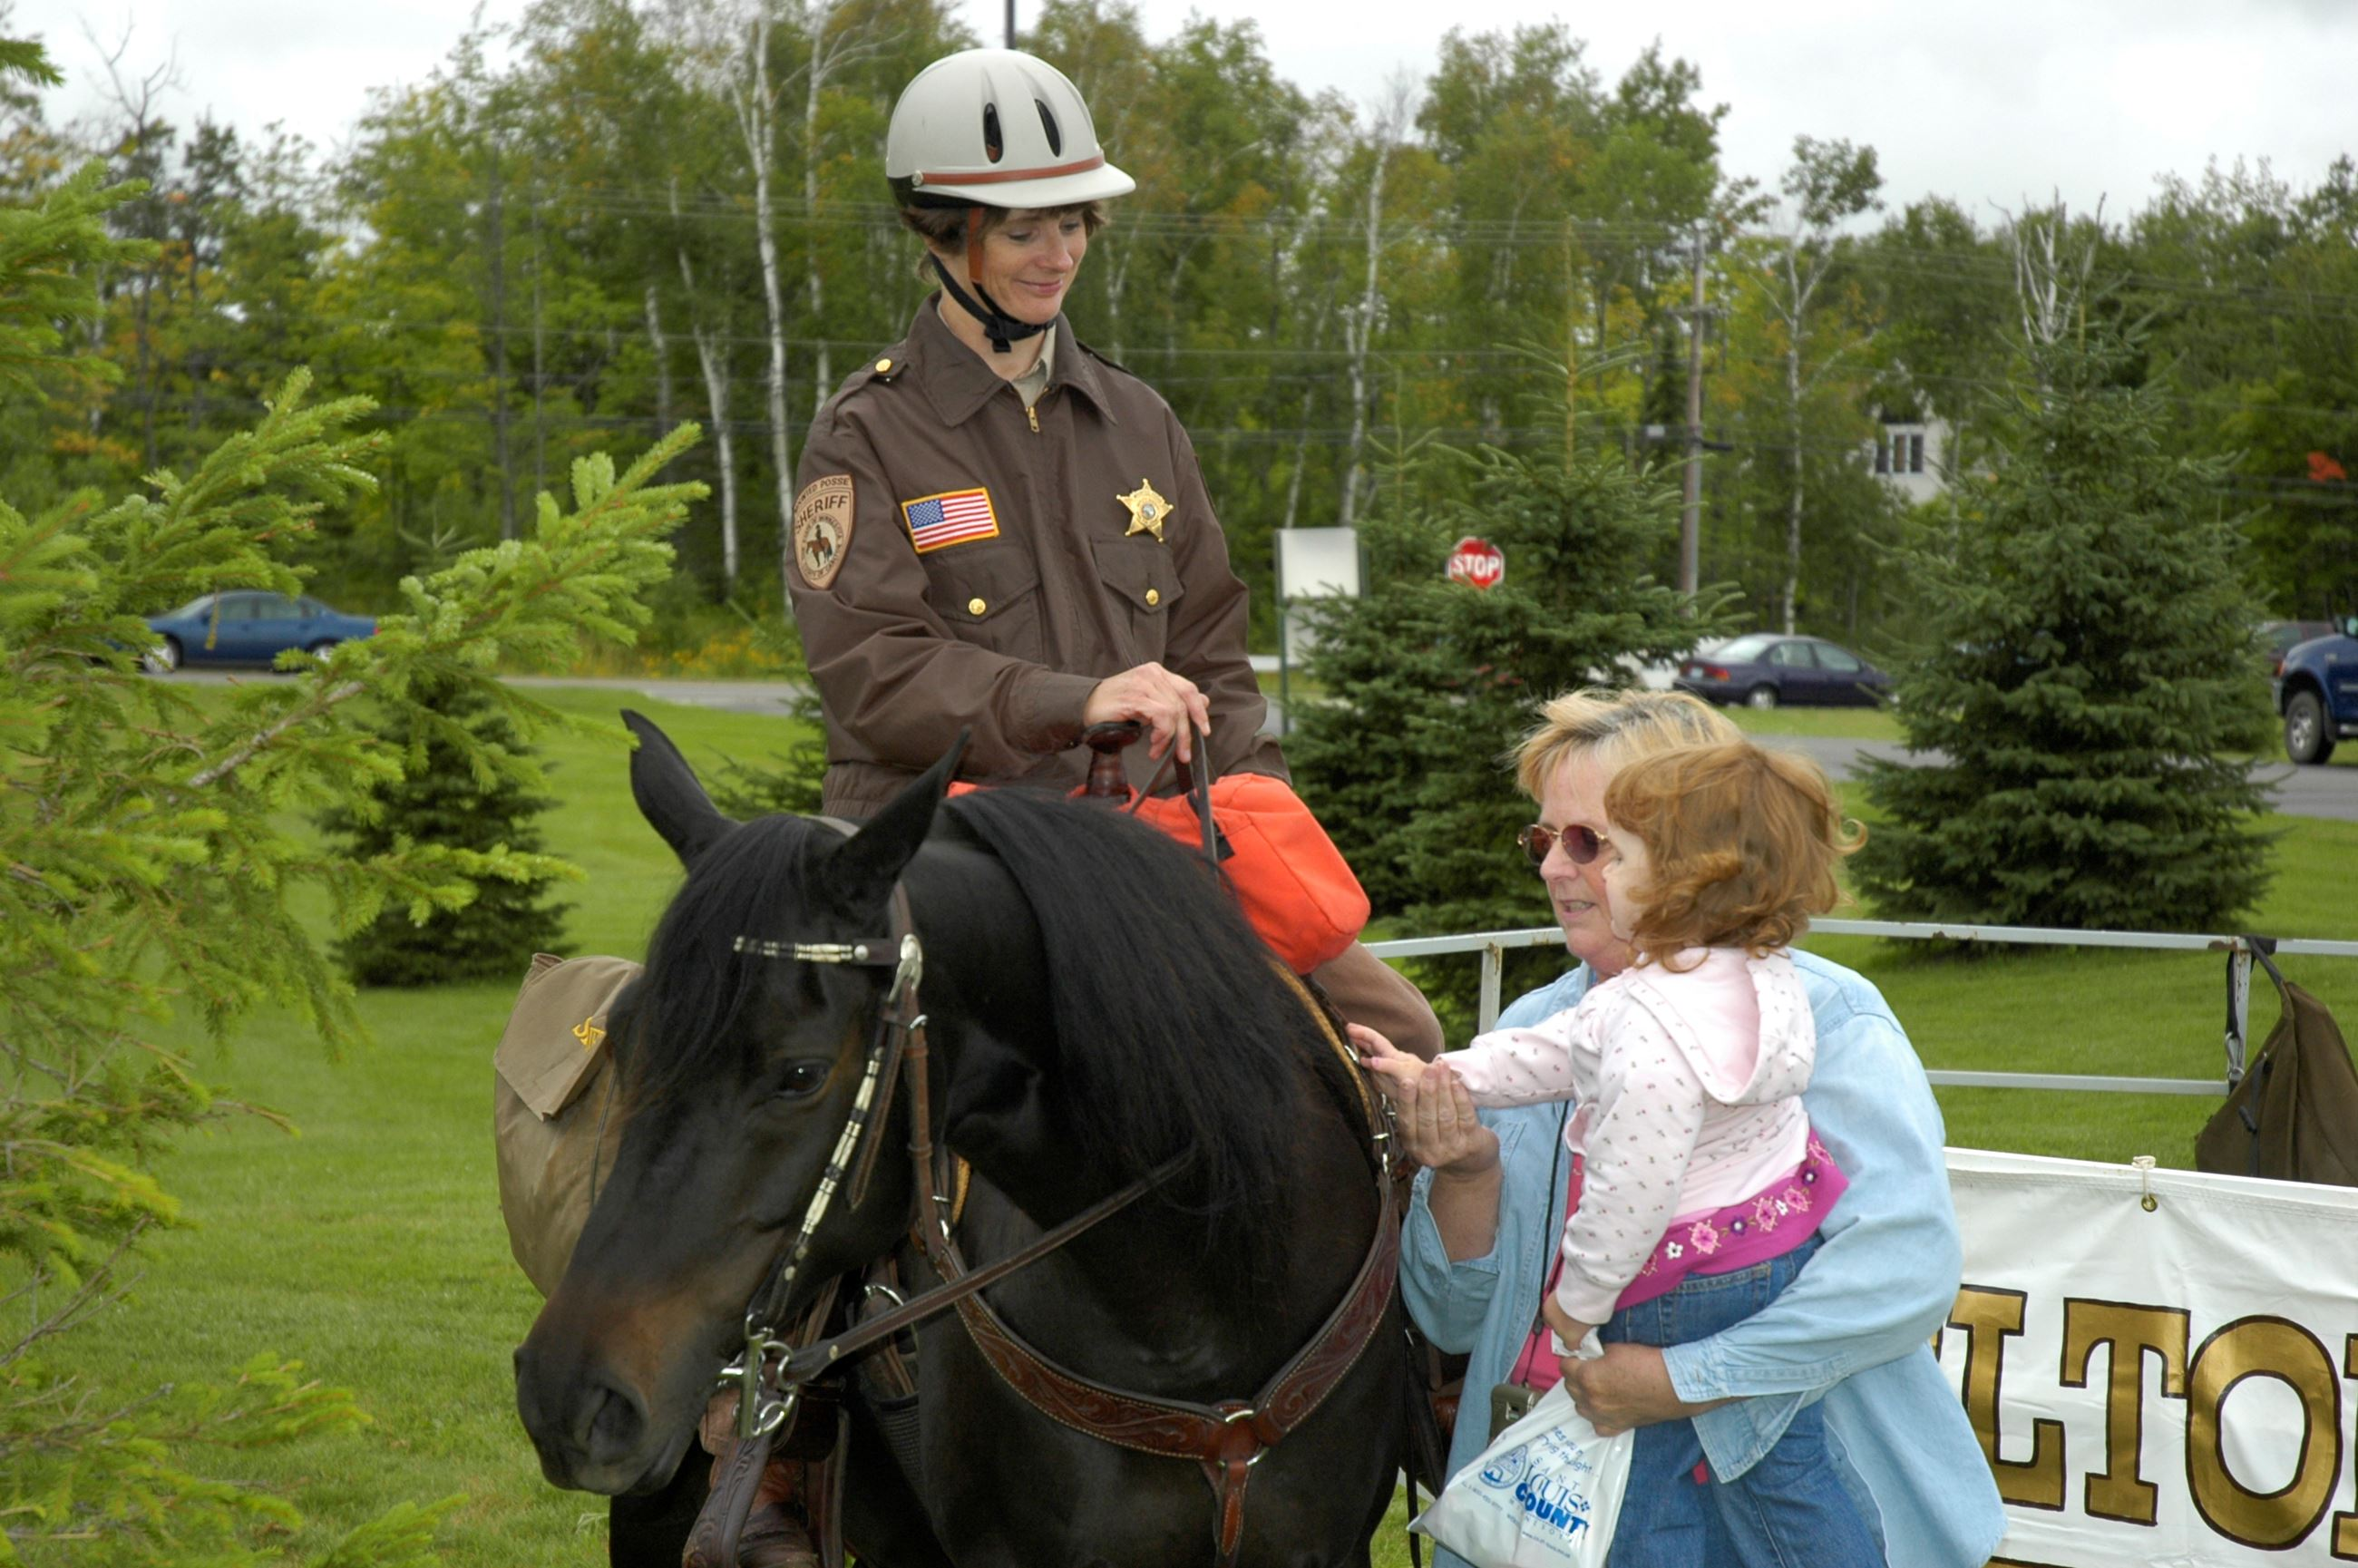 Female officer on a brown horse with a child petting horse